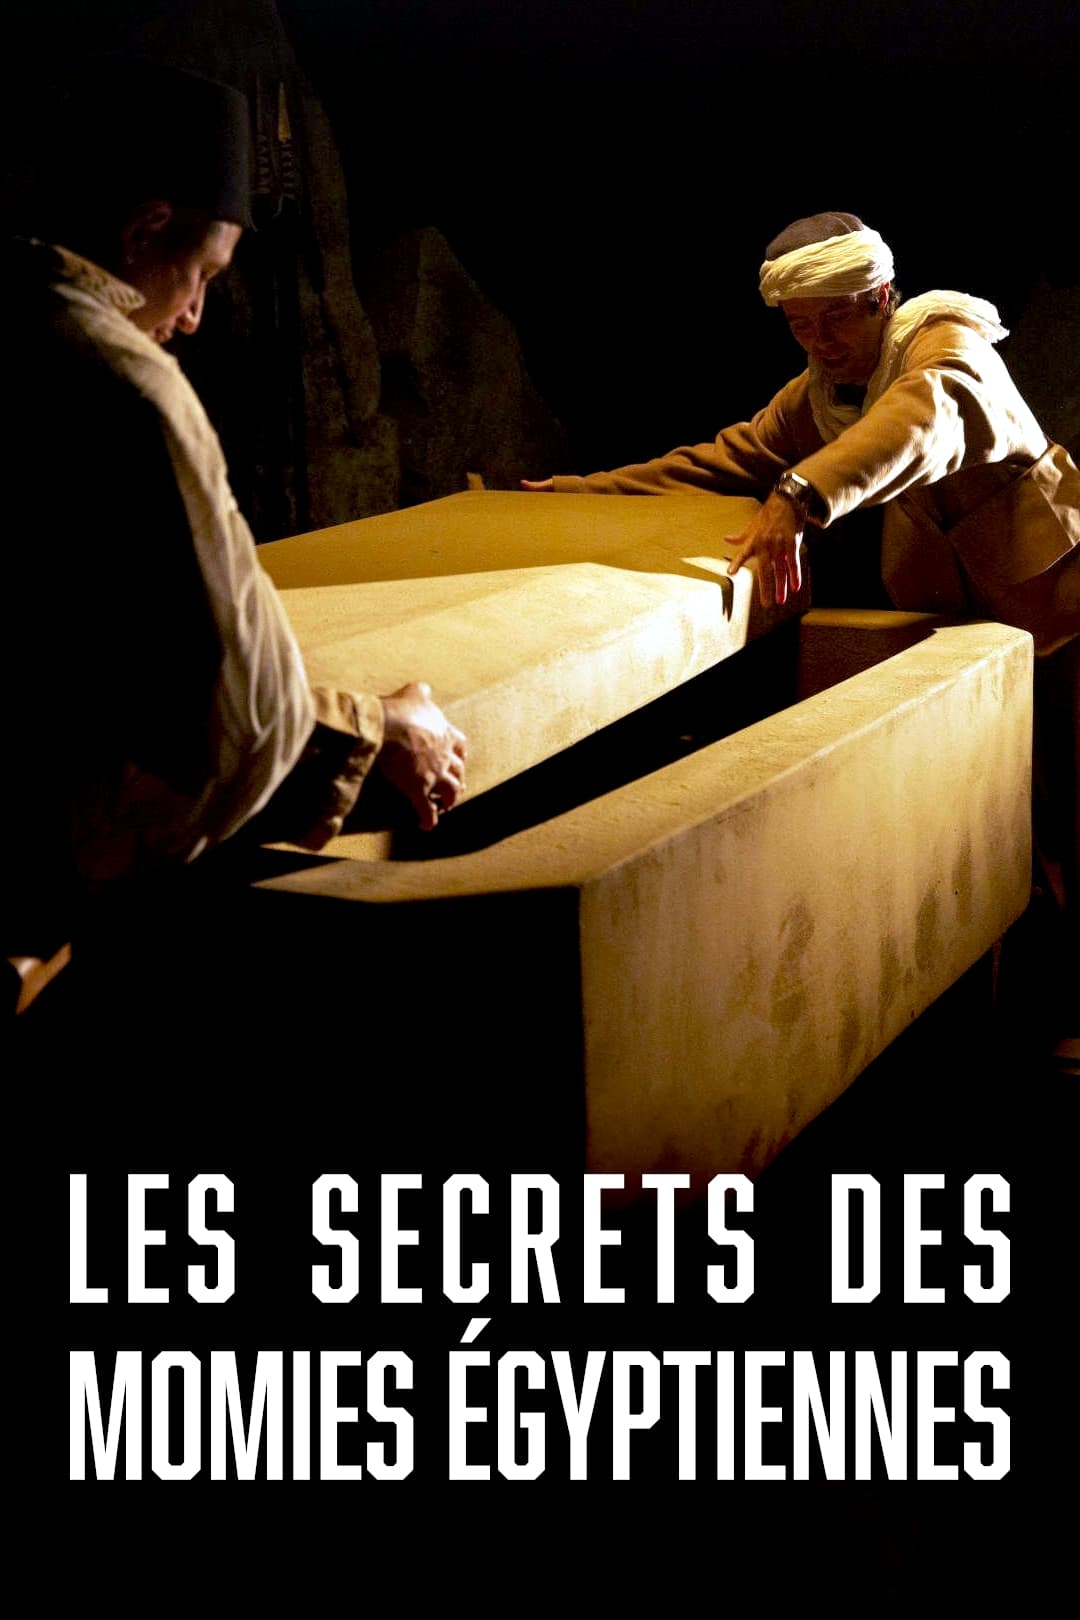 Mummy Mysteries TV Shows About King